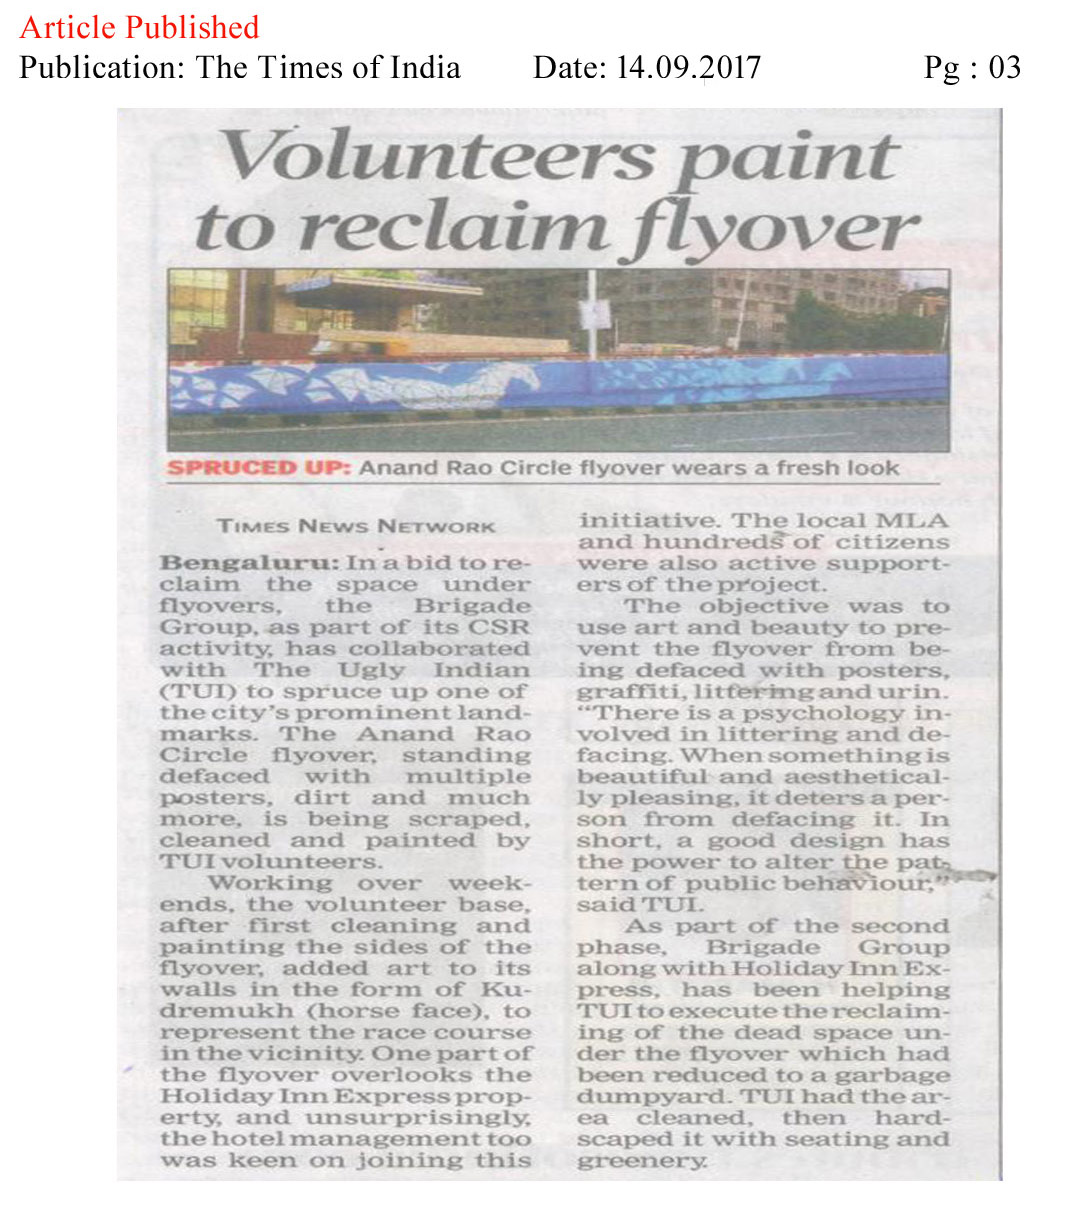 Volunteers Paint to reclaim flyover—The Times of India